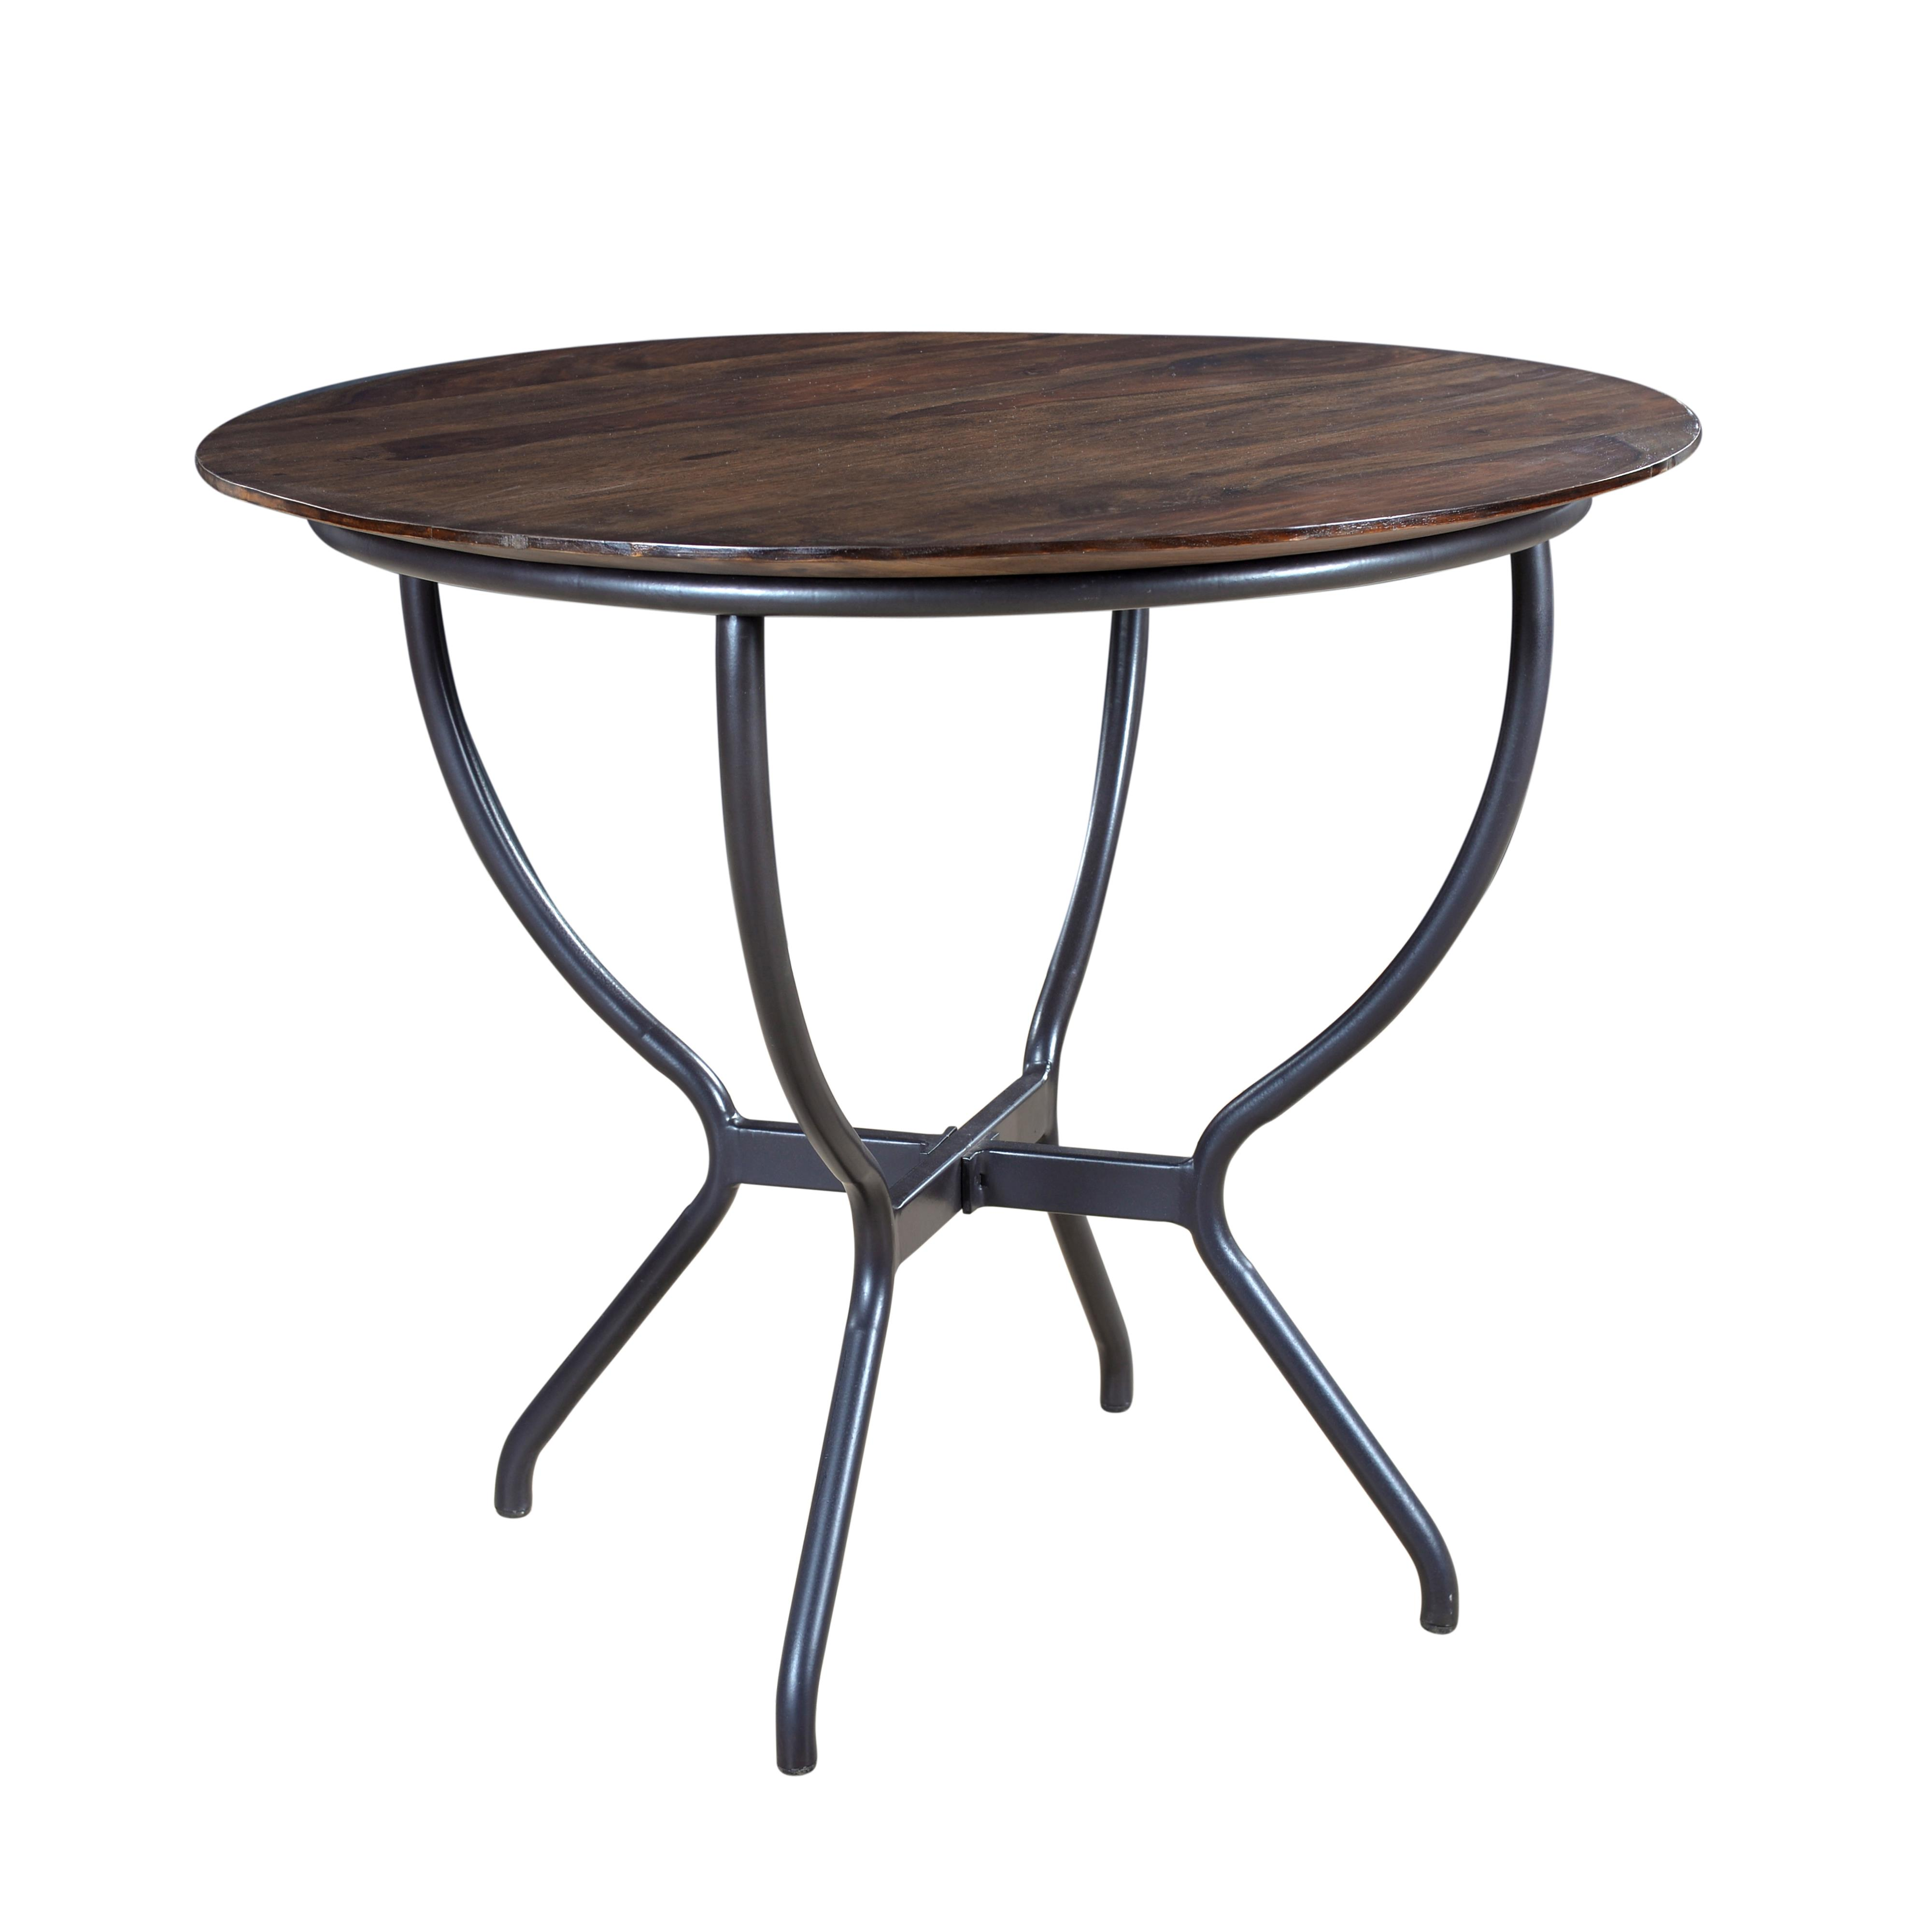 C2C Accents Dining Table by C2C at Walker's Furniture